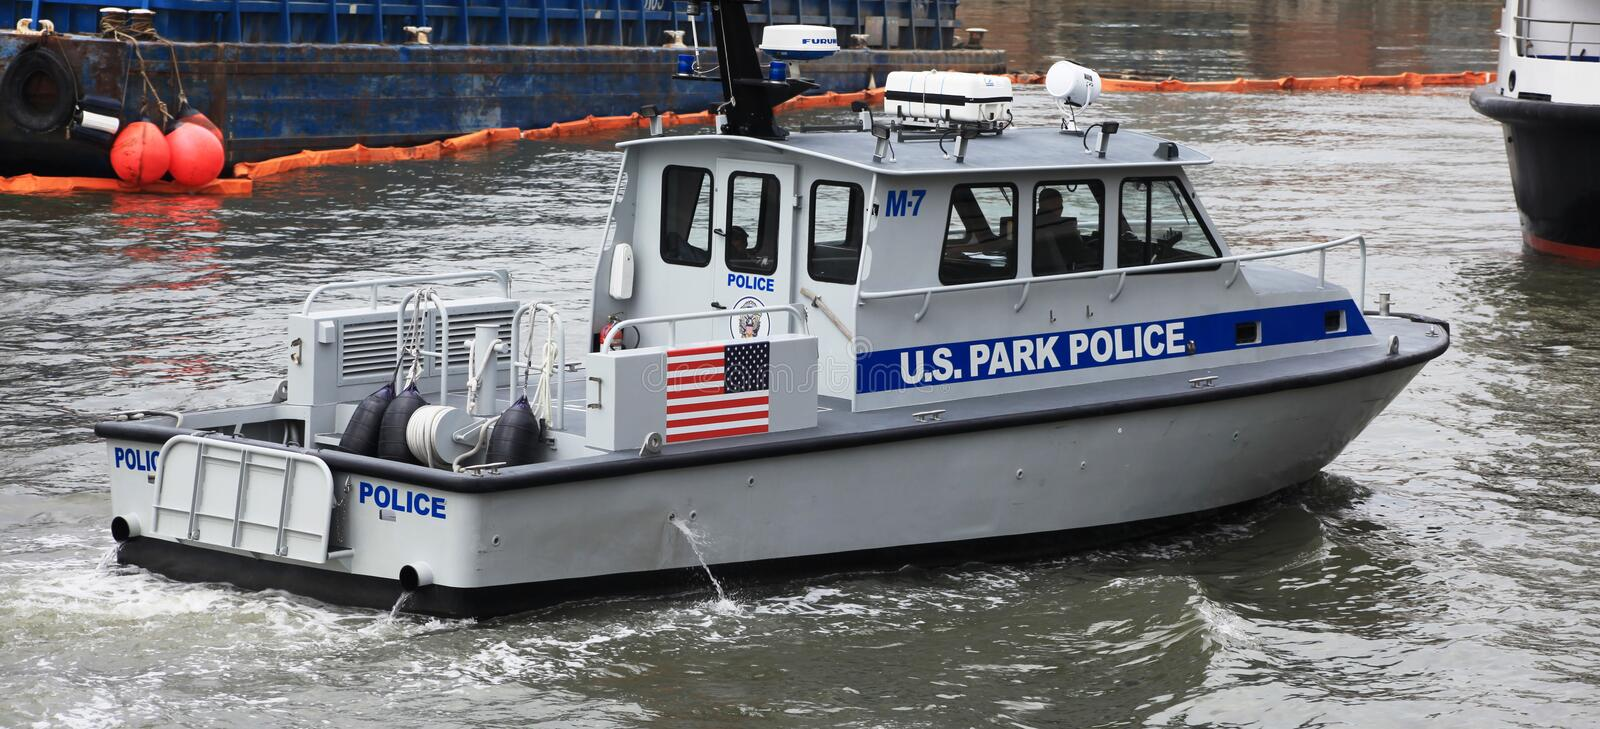 Download New York US Park Police In Action Editorial Image - Image: 12176985